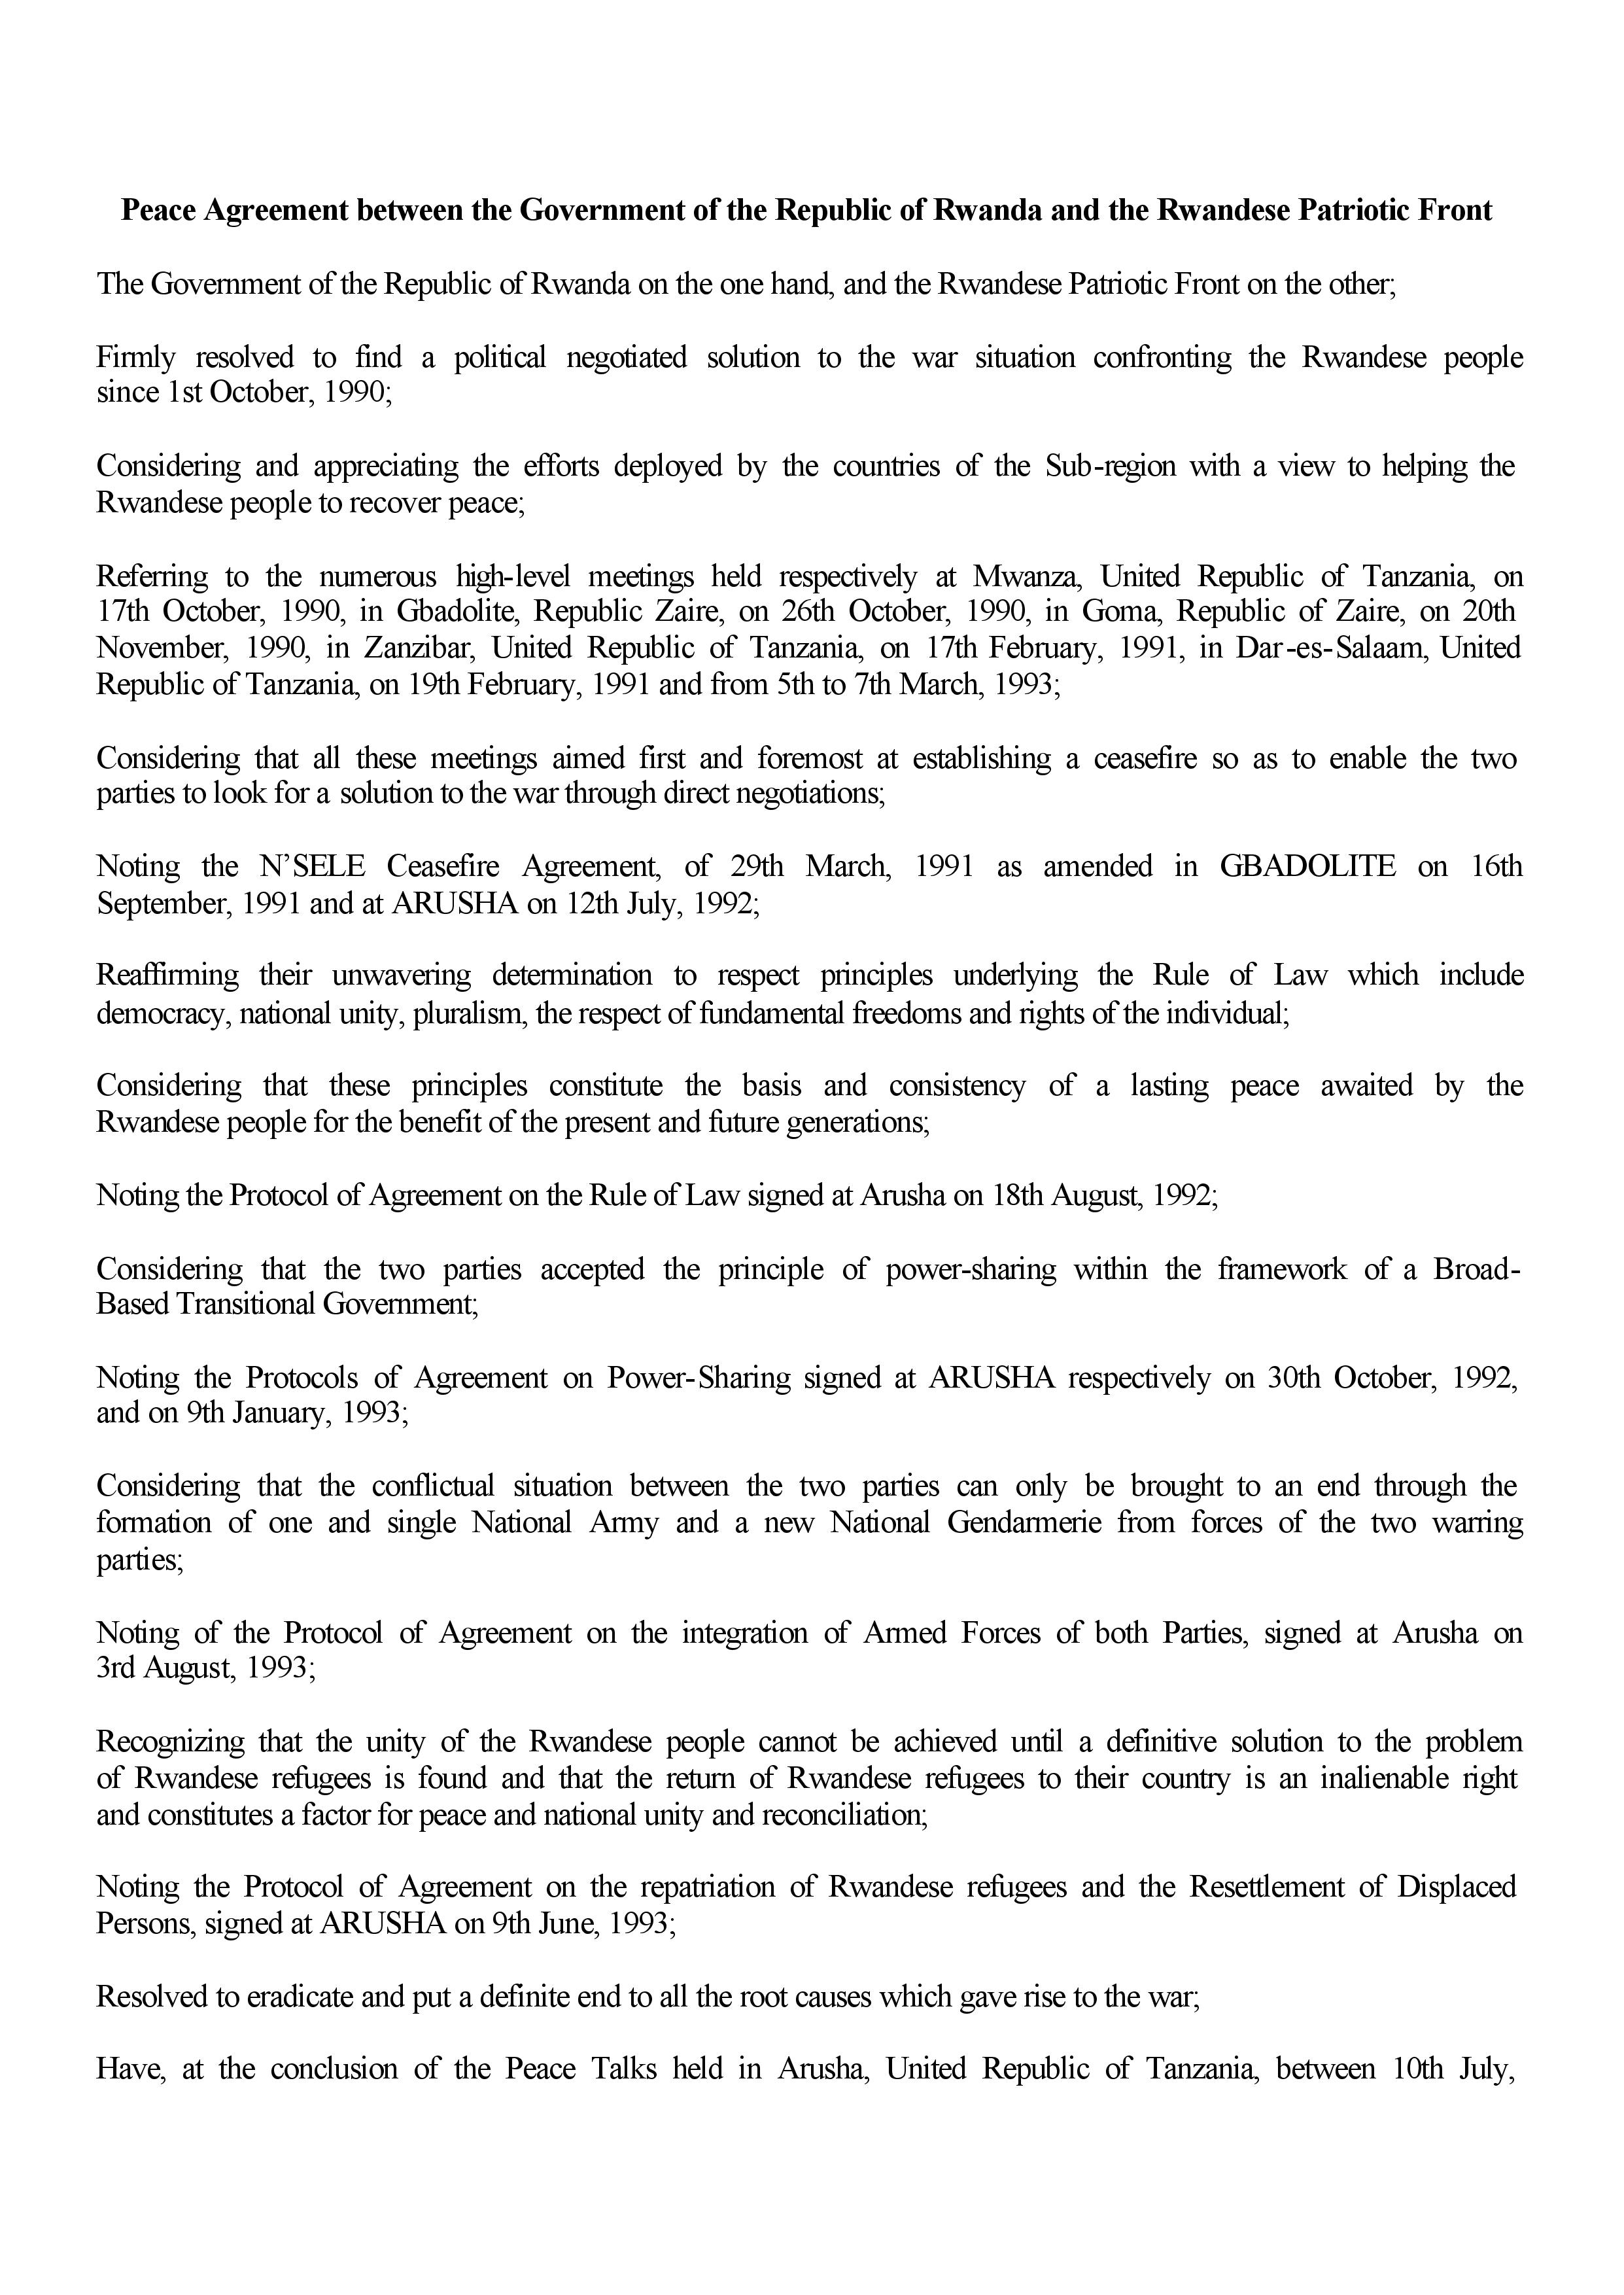 Arusha peace agreement between the government of the republic of accords d arusha rwanda et fpr page 001 platinumwayz